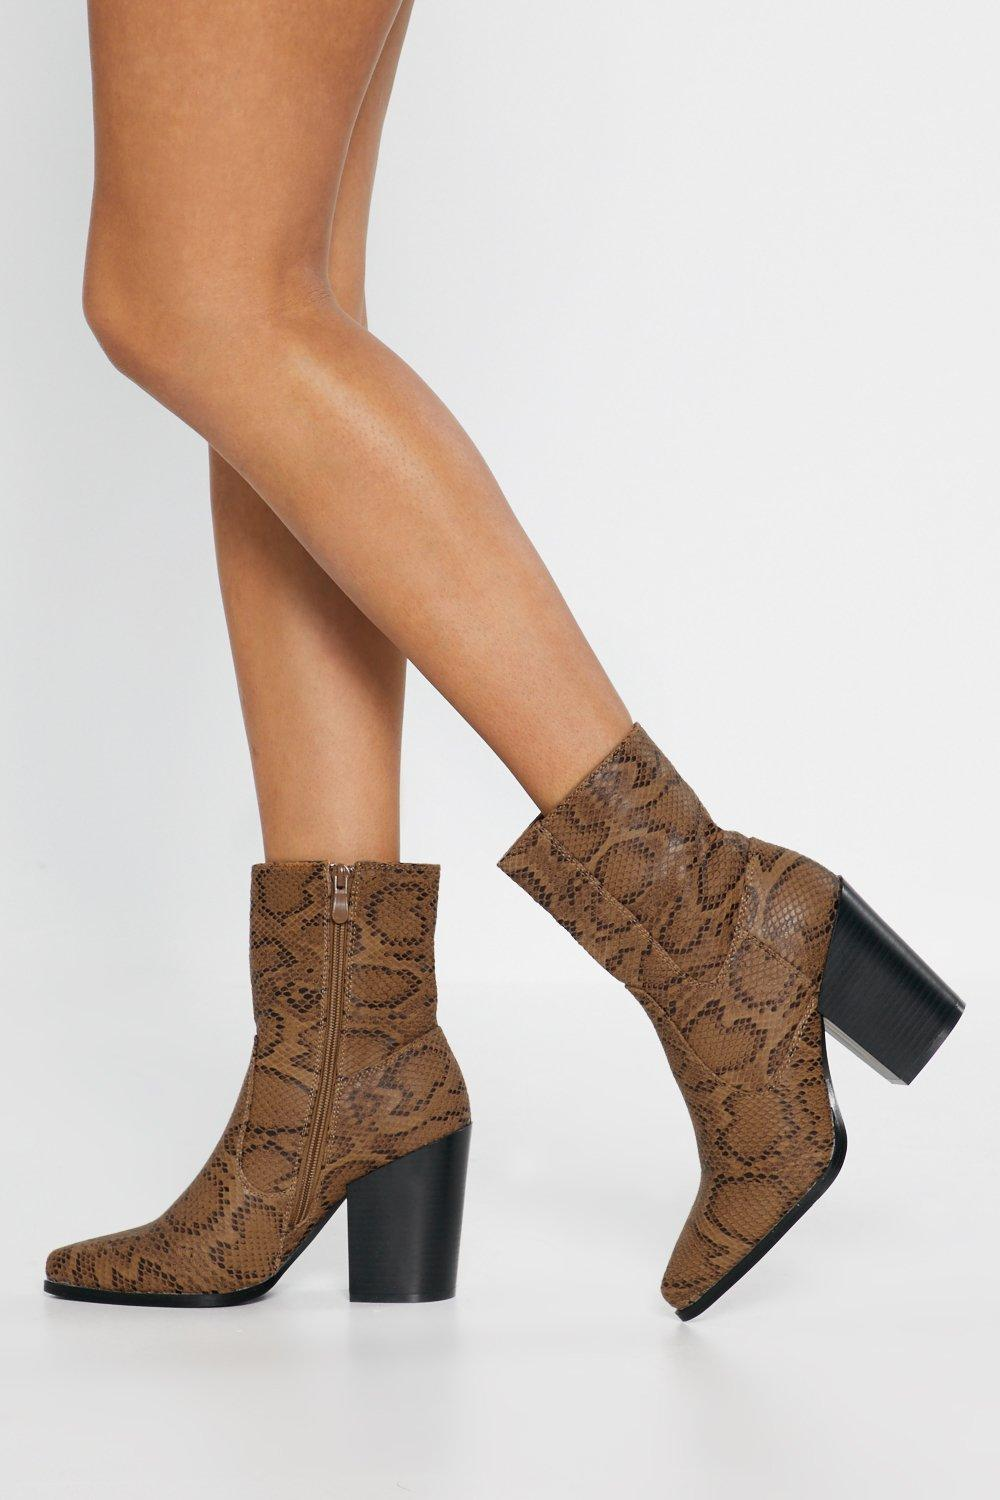 c85728f75a72 Snake Print Heeled Boots | Shop Clothes at Nasty Gal!